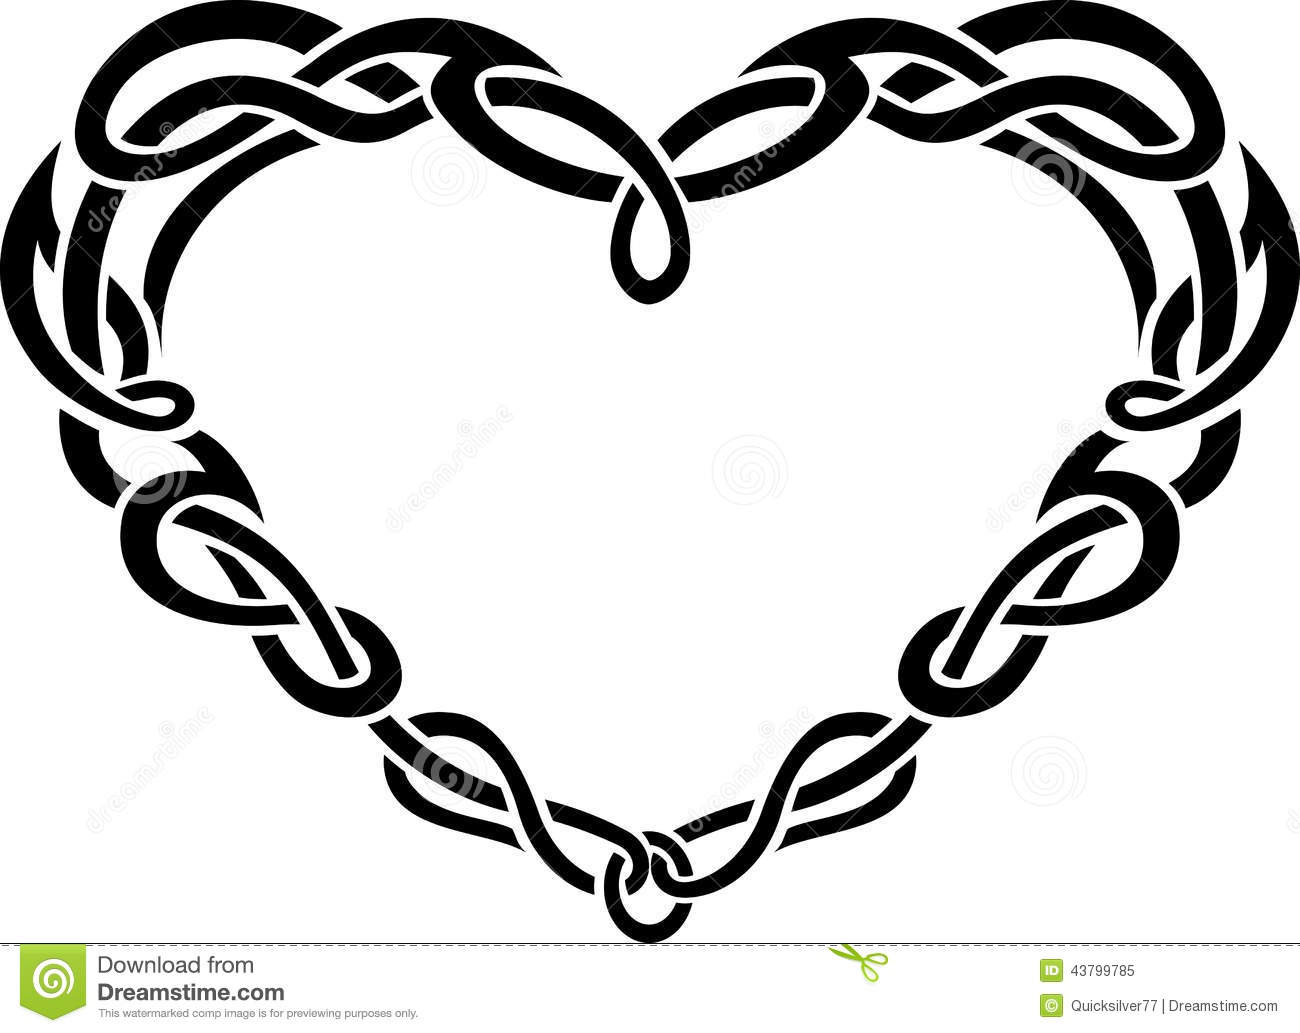 Celtic Heart Border Stock Illustration - Image: 43799785